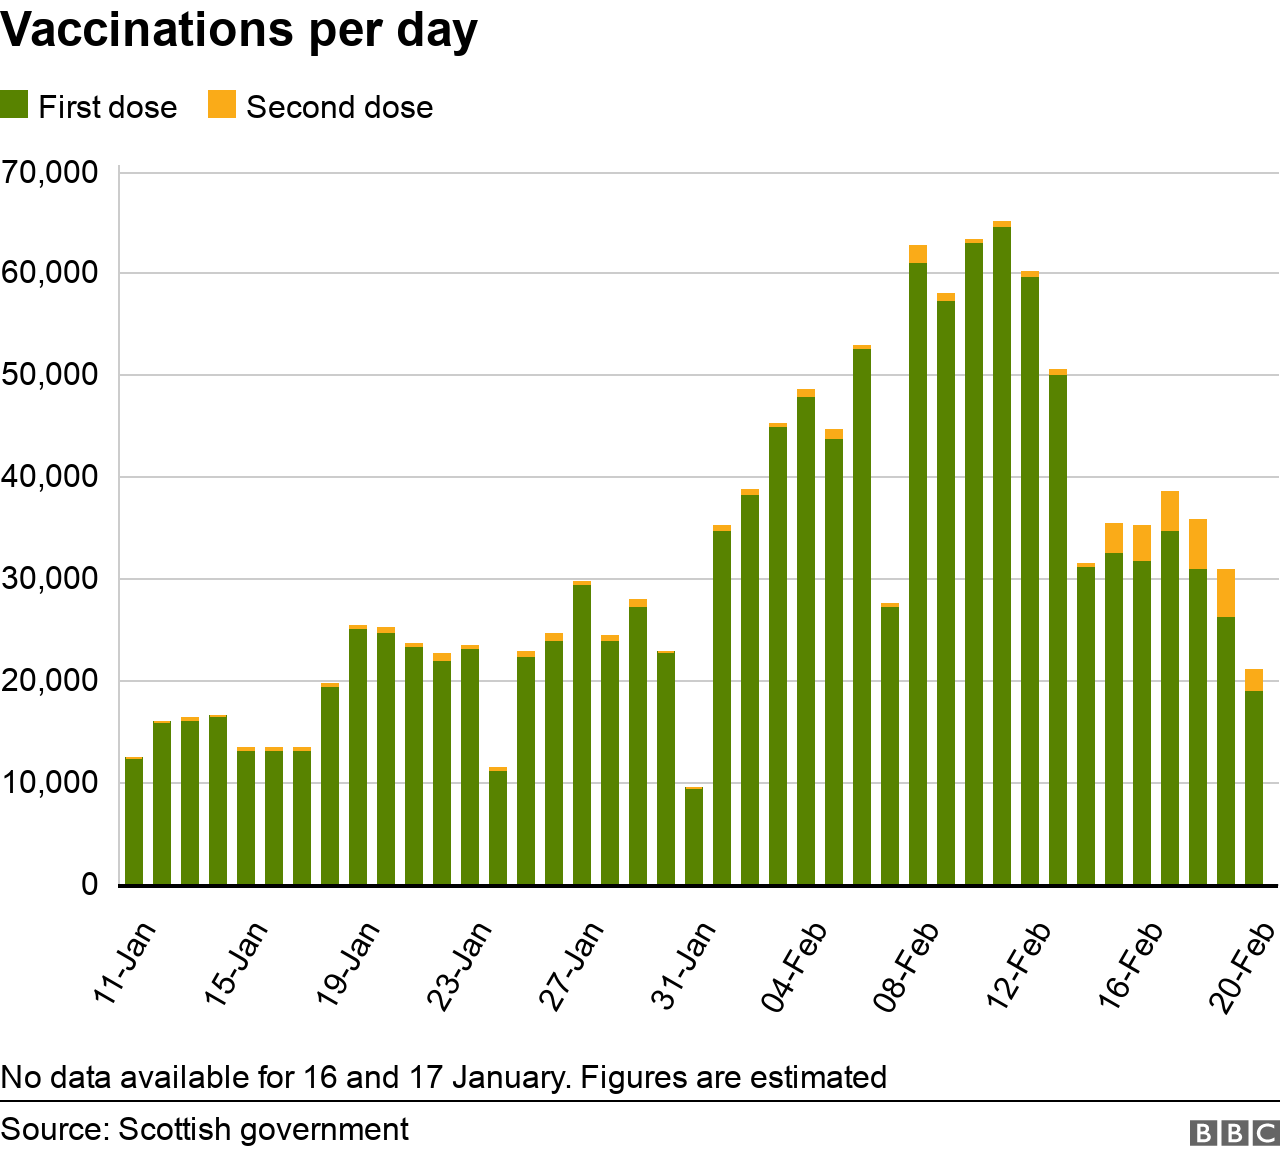 Vaccinations per day